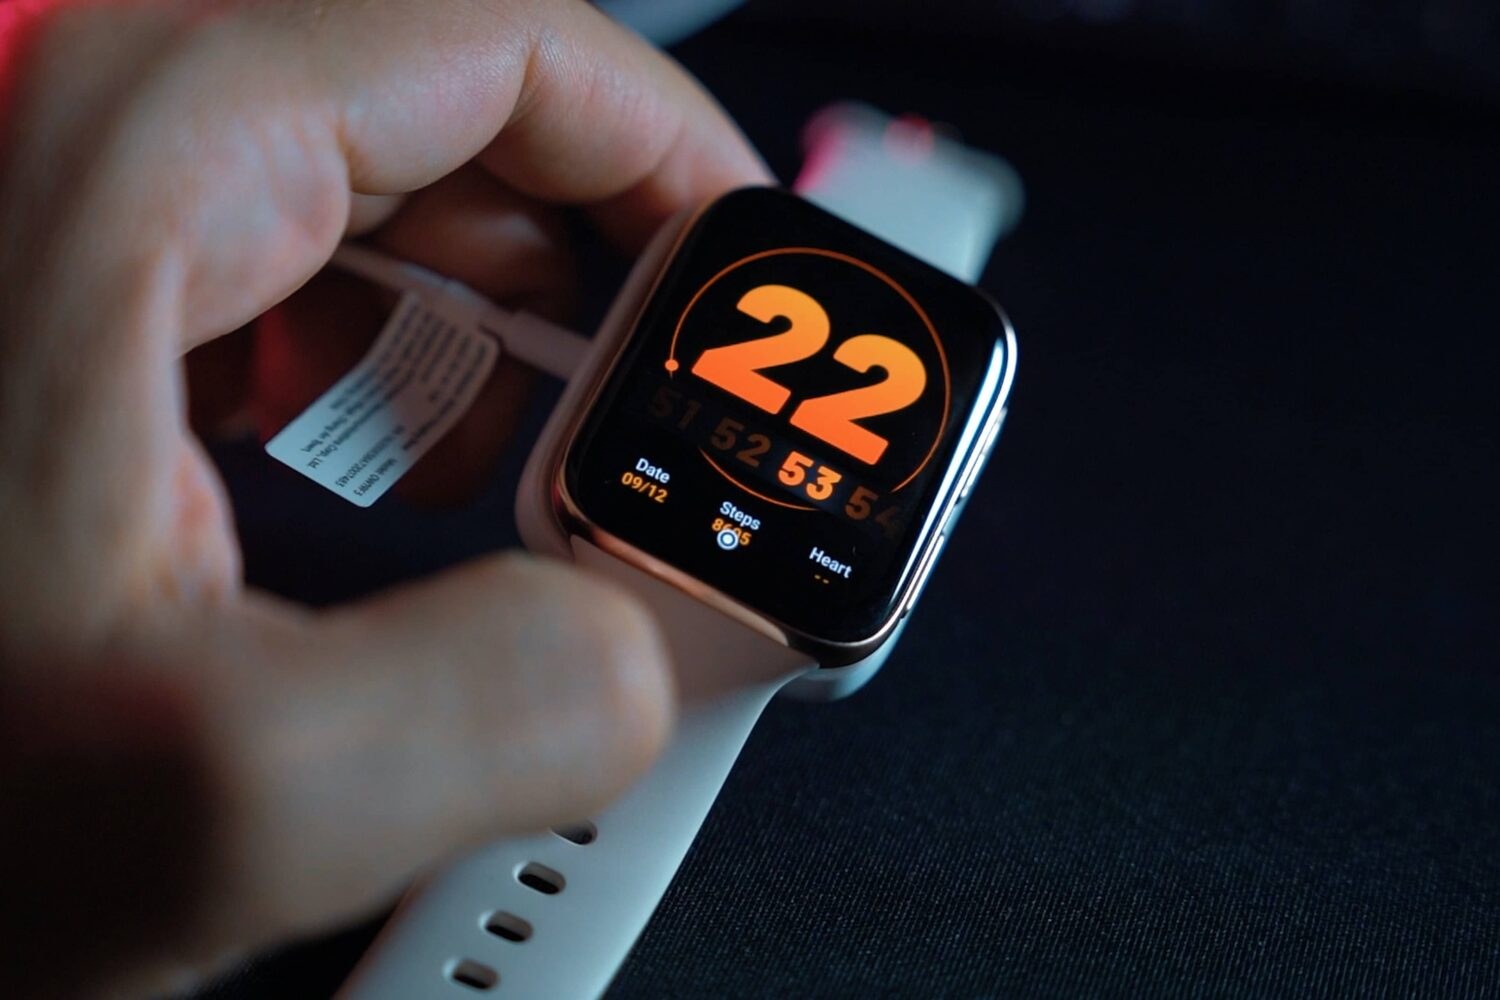 A photo of a hand holding an Apple Watch Series 6 with a white Sports band